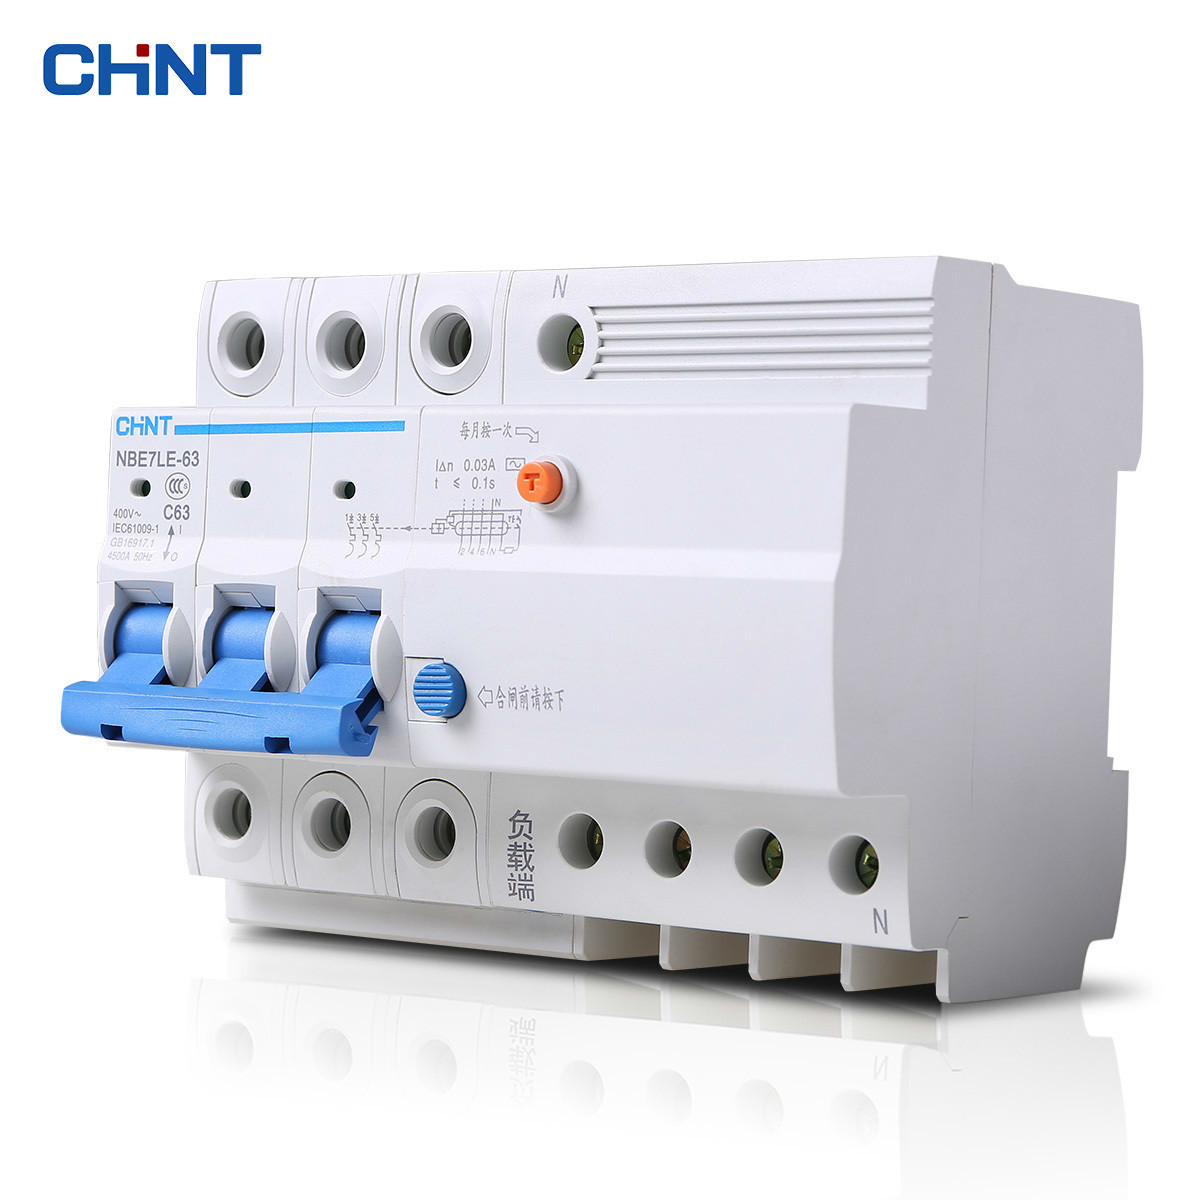 CHNT CHINT Leakage Protector NBE7LE 3P + N 16A 20A 25A 32A 40A 63A Small Circuit Breaker Air Switch 400a 3p 220v ns moulded case circuit breaker